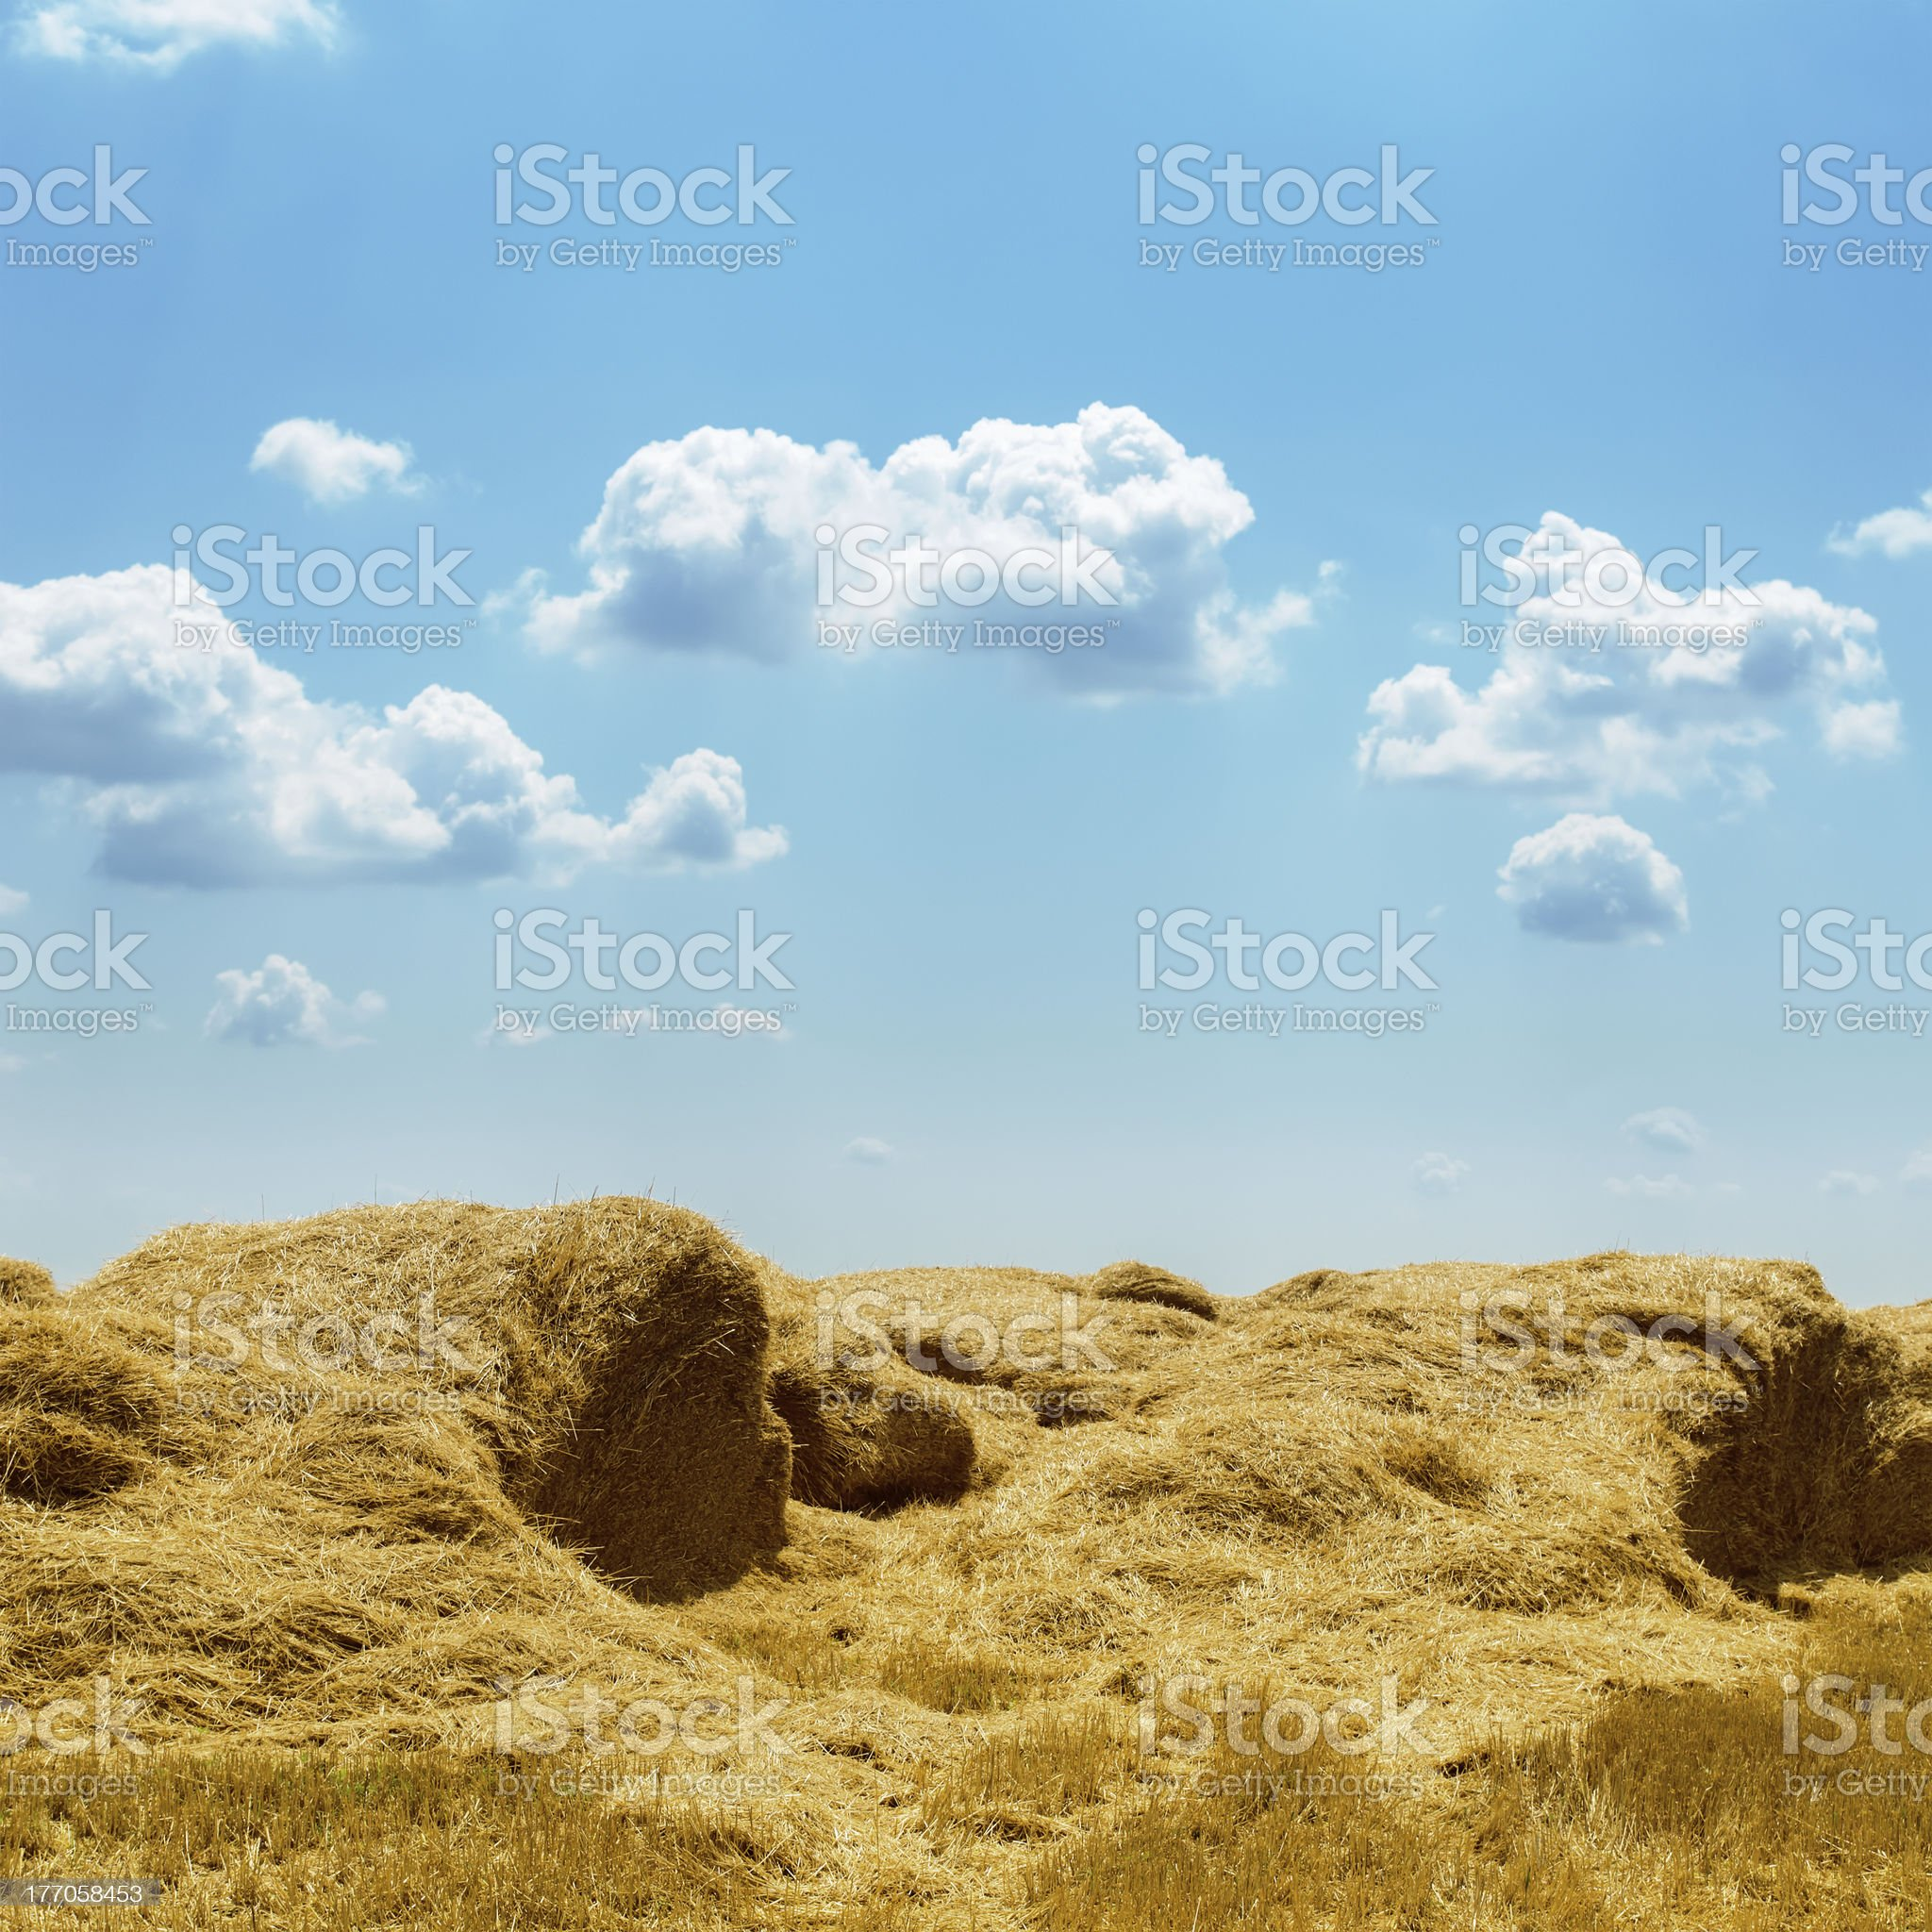 stack of straw and clouds over it royalty-free stock photo